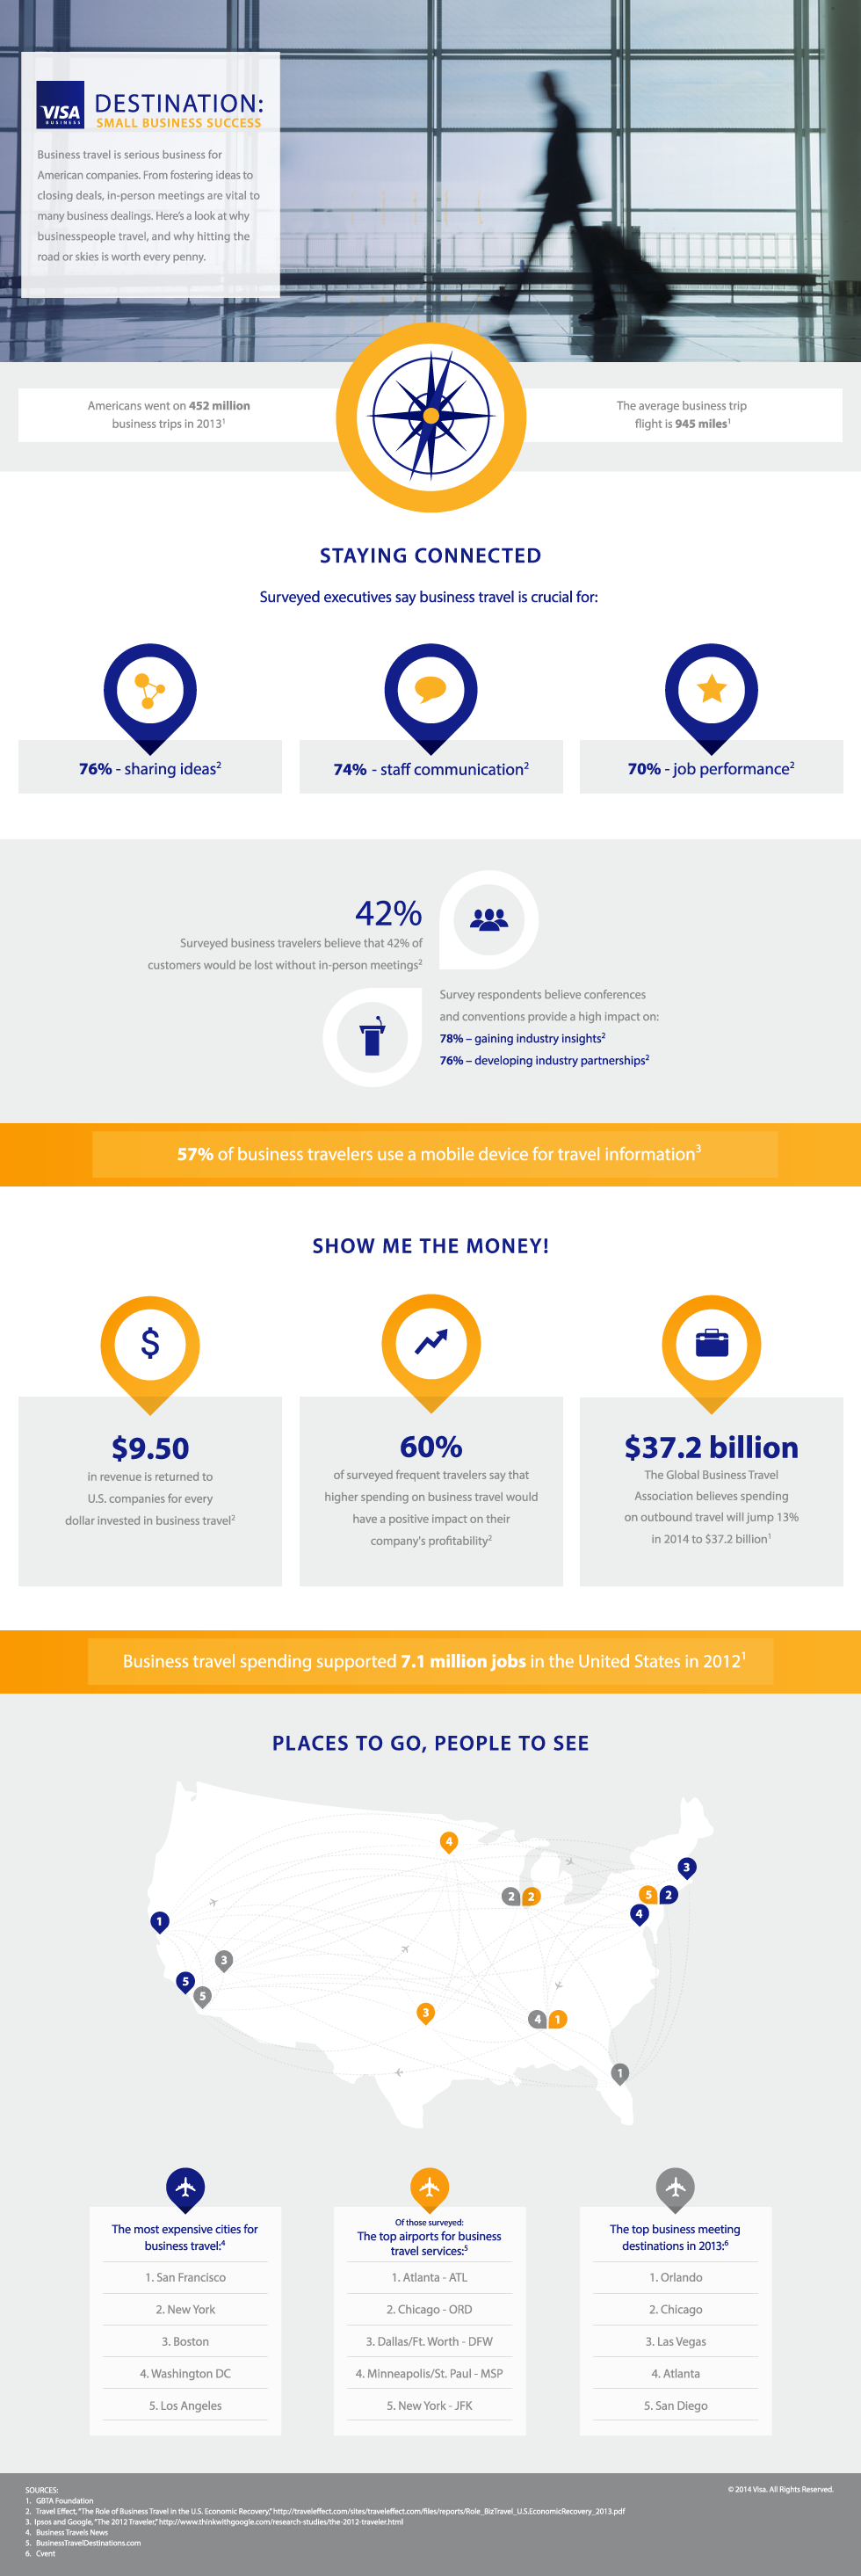 Visa Small Business Infographic: